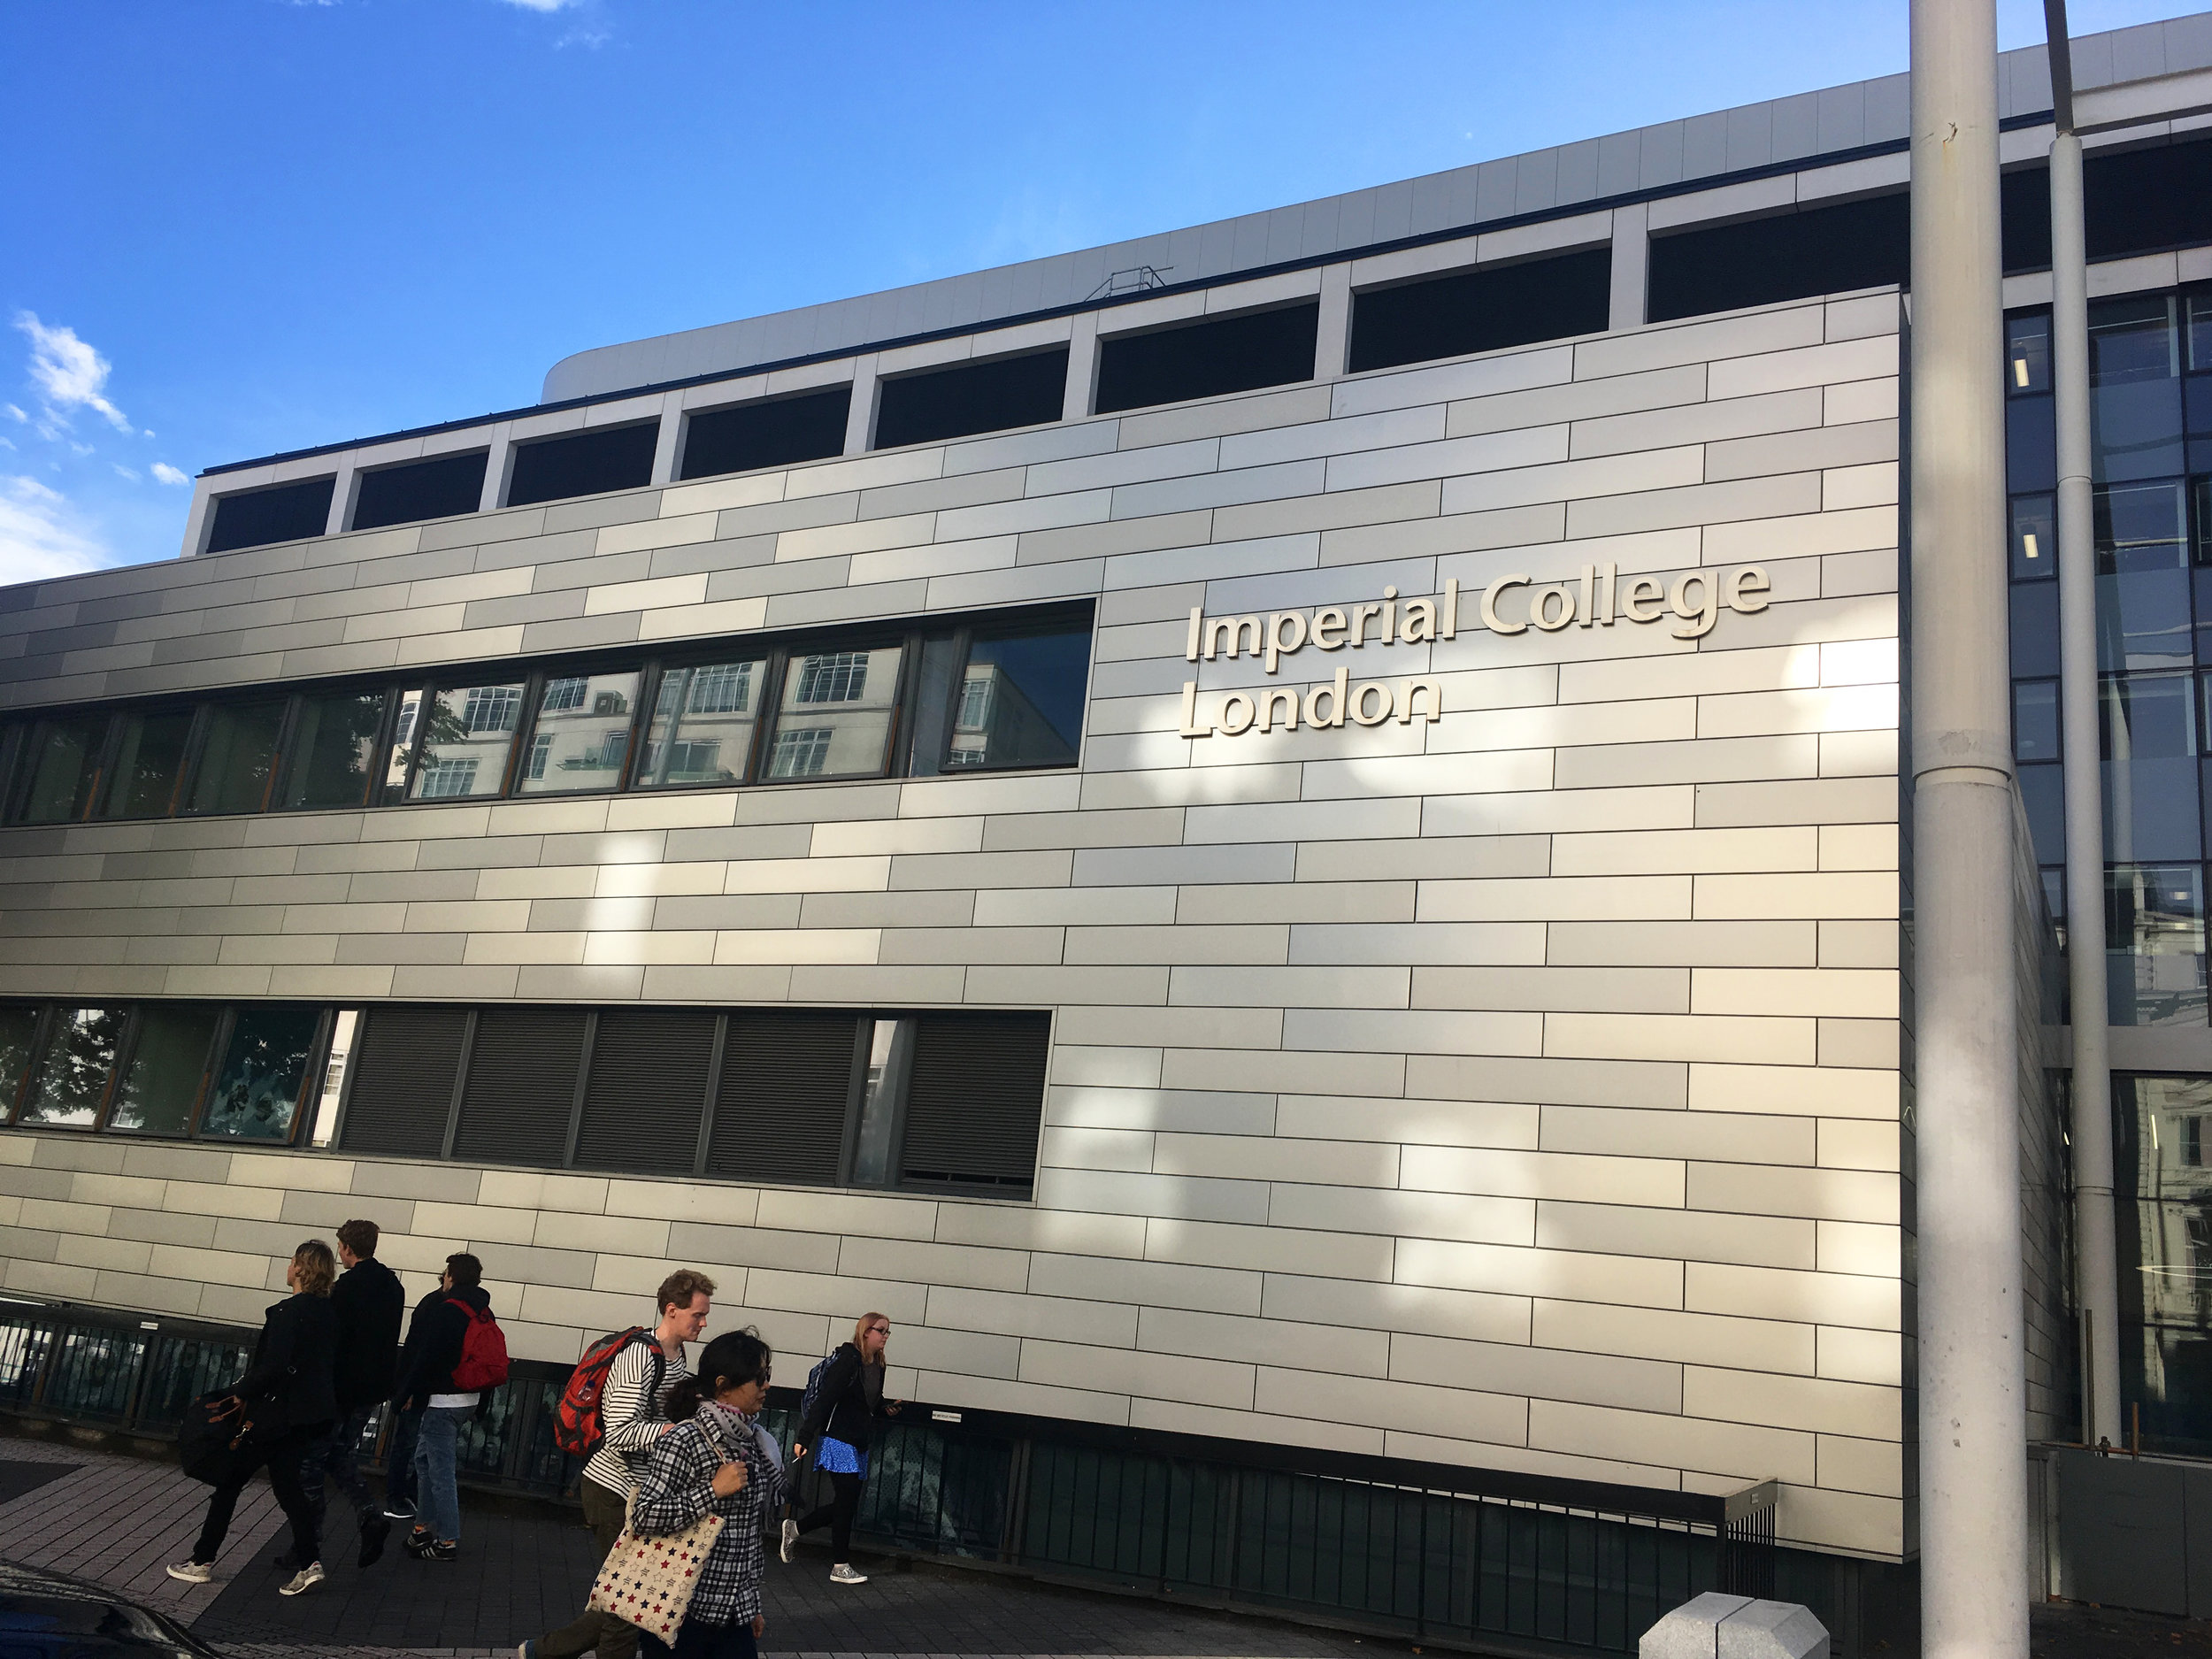 This year's Climate KIC workshop took place at Imperial College